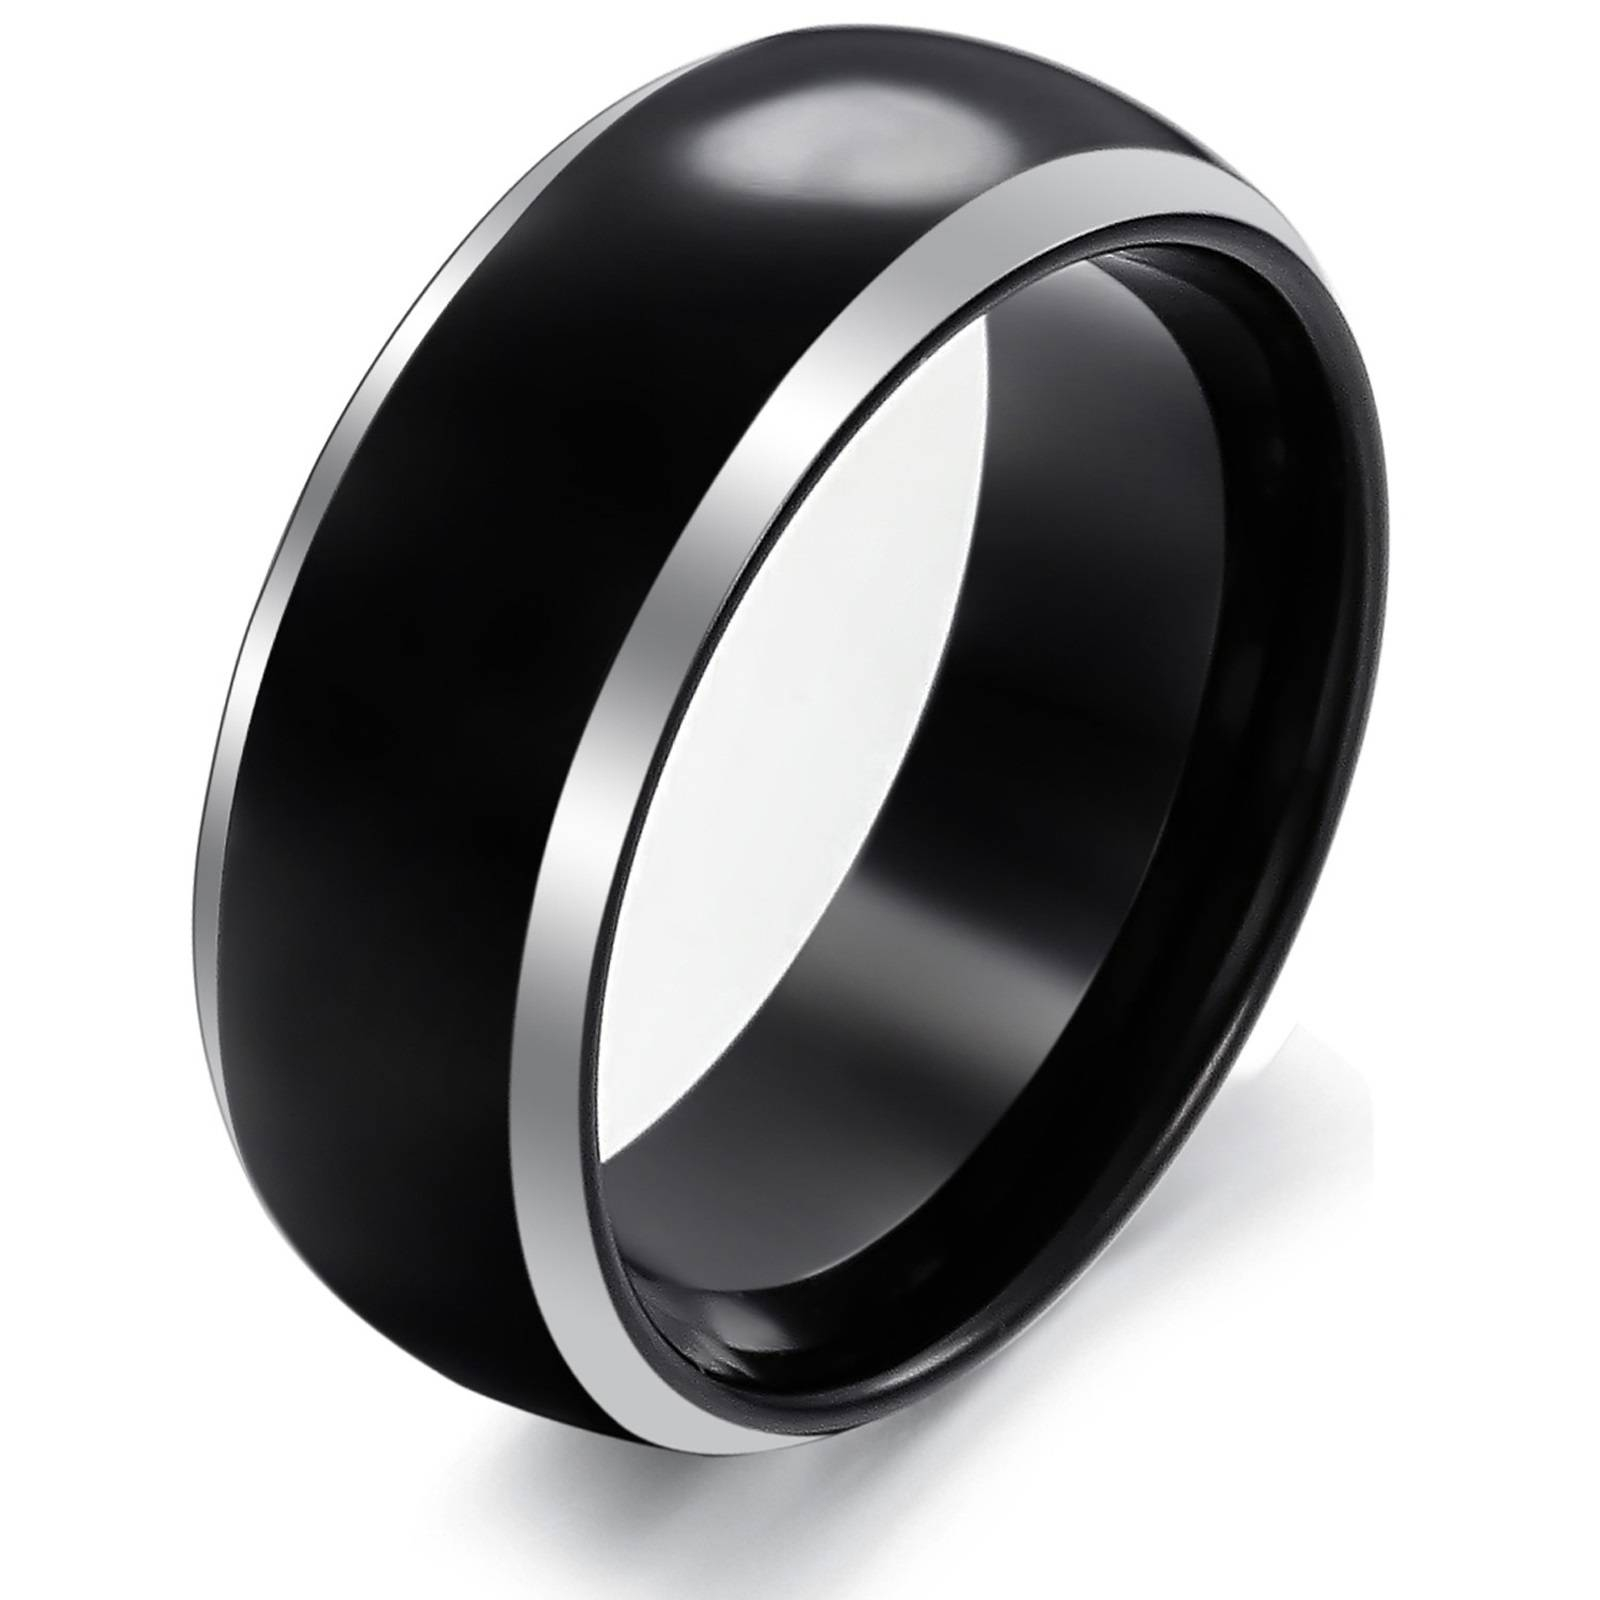 Black Tungsten Wedding Bands For Men : Unique Designs For Mens Intended For Black Steel Wedding Bands (View 4 of 15)